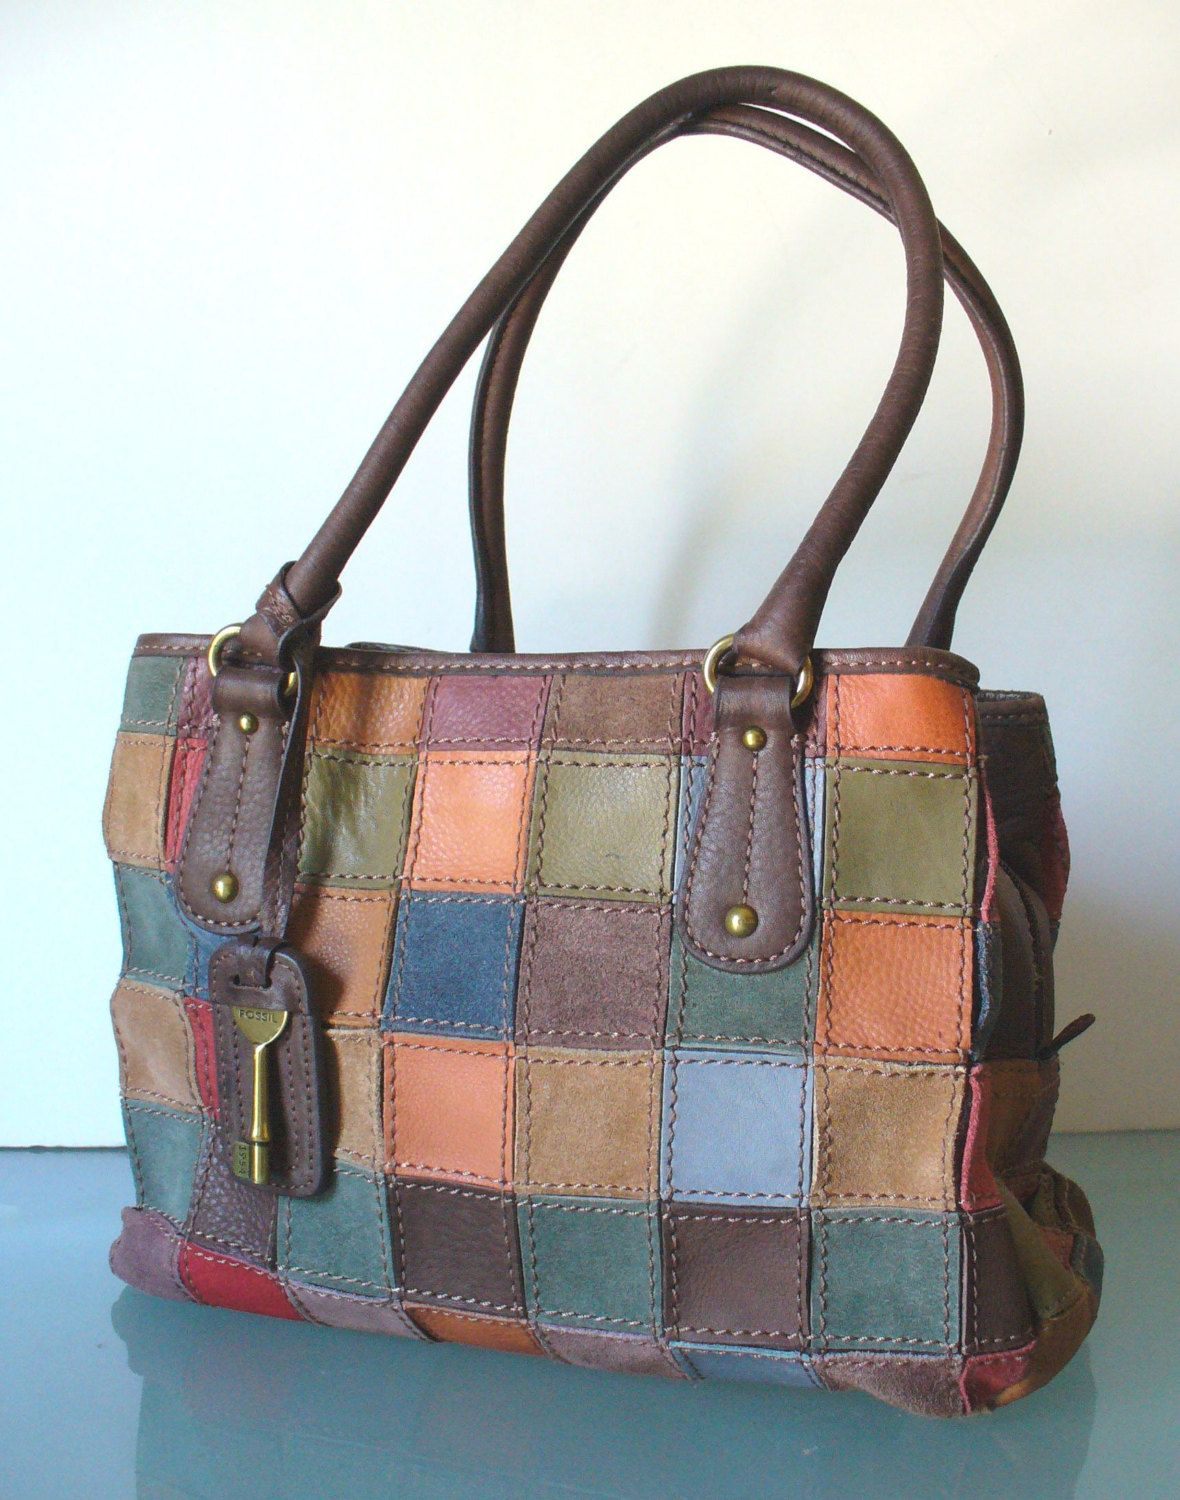 Vintage Fossil Patchwork Leather Bag By TheOldBagOnline On Etsy - Porte document fossil